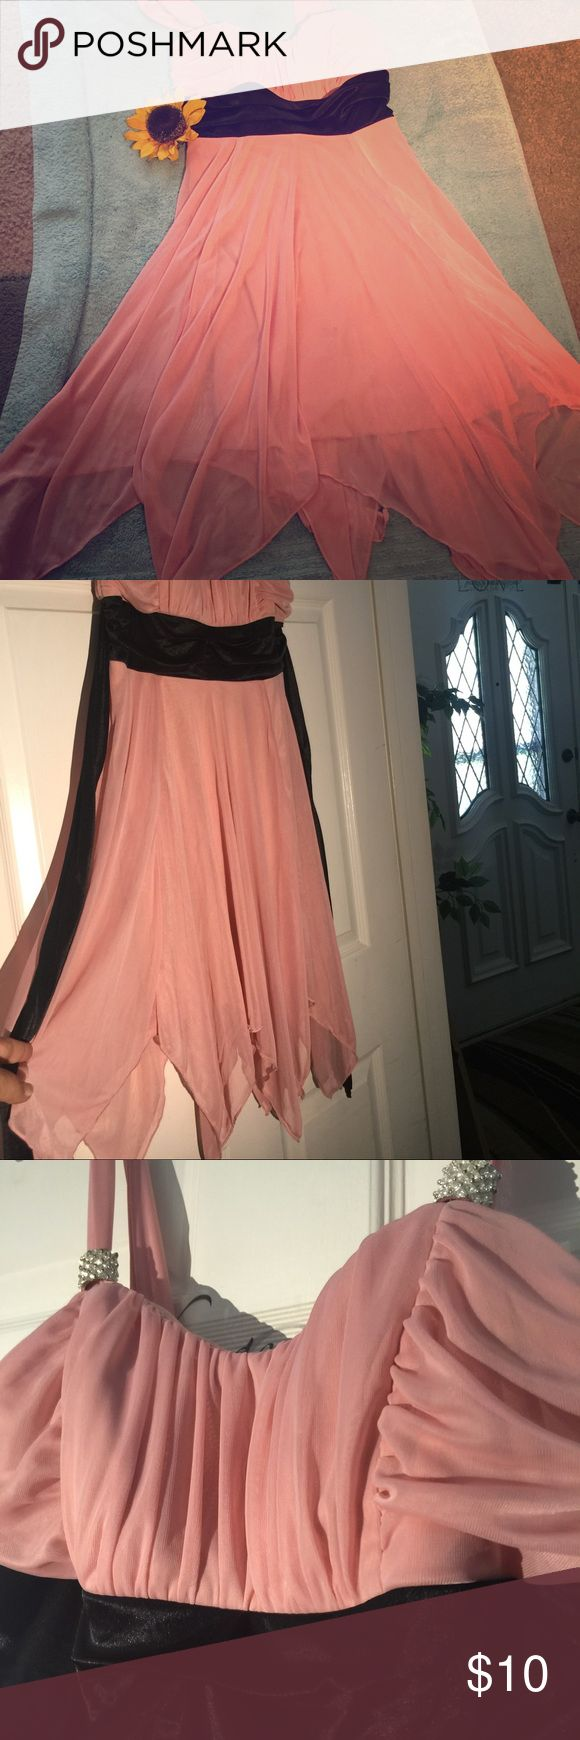 Dress This cute dress can be used out on the town, at a wedding, prom or formal dinner. It's a soft pink ( like mauve color pink) with black . accent with fake diamond like gems on the straps, hidden zipper on back and ties too. Clean no stains 🚭🏡 medium junior dress Pompous Girly  Dresses Prom